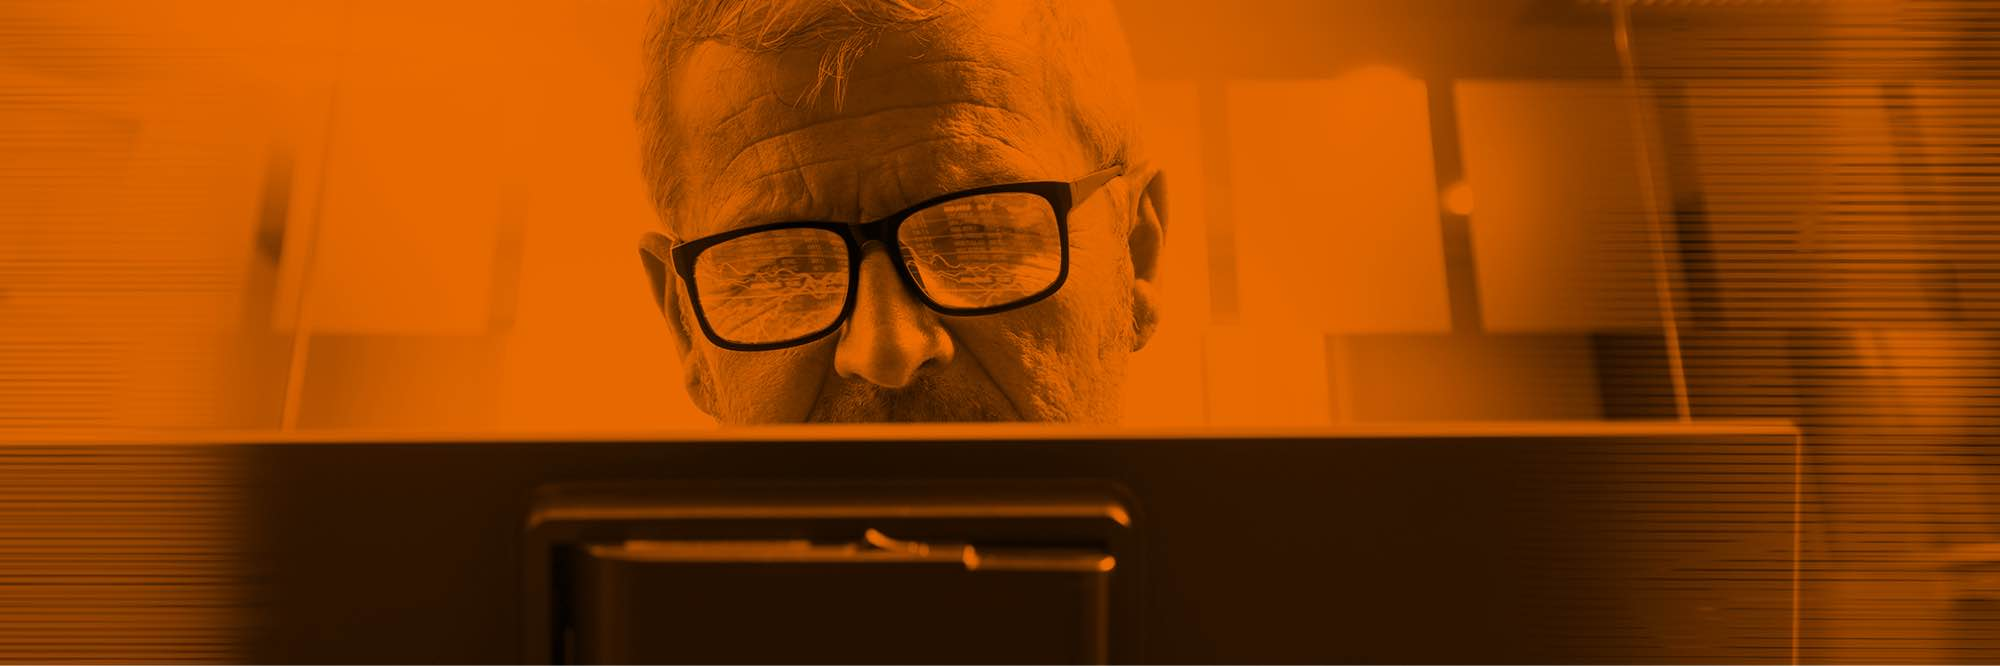 Man with glasses looking at analytics on computer screen